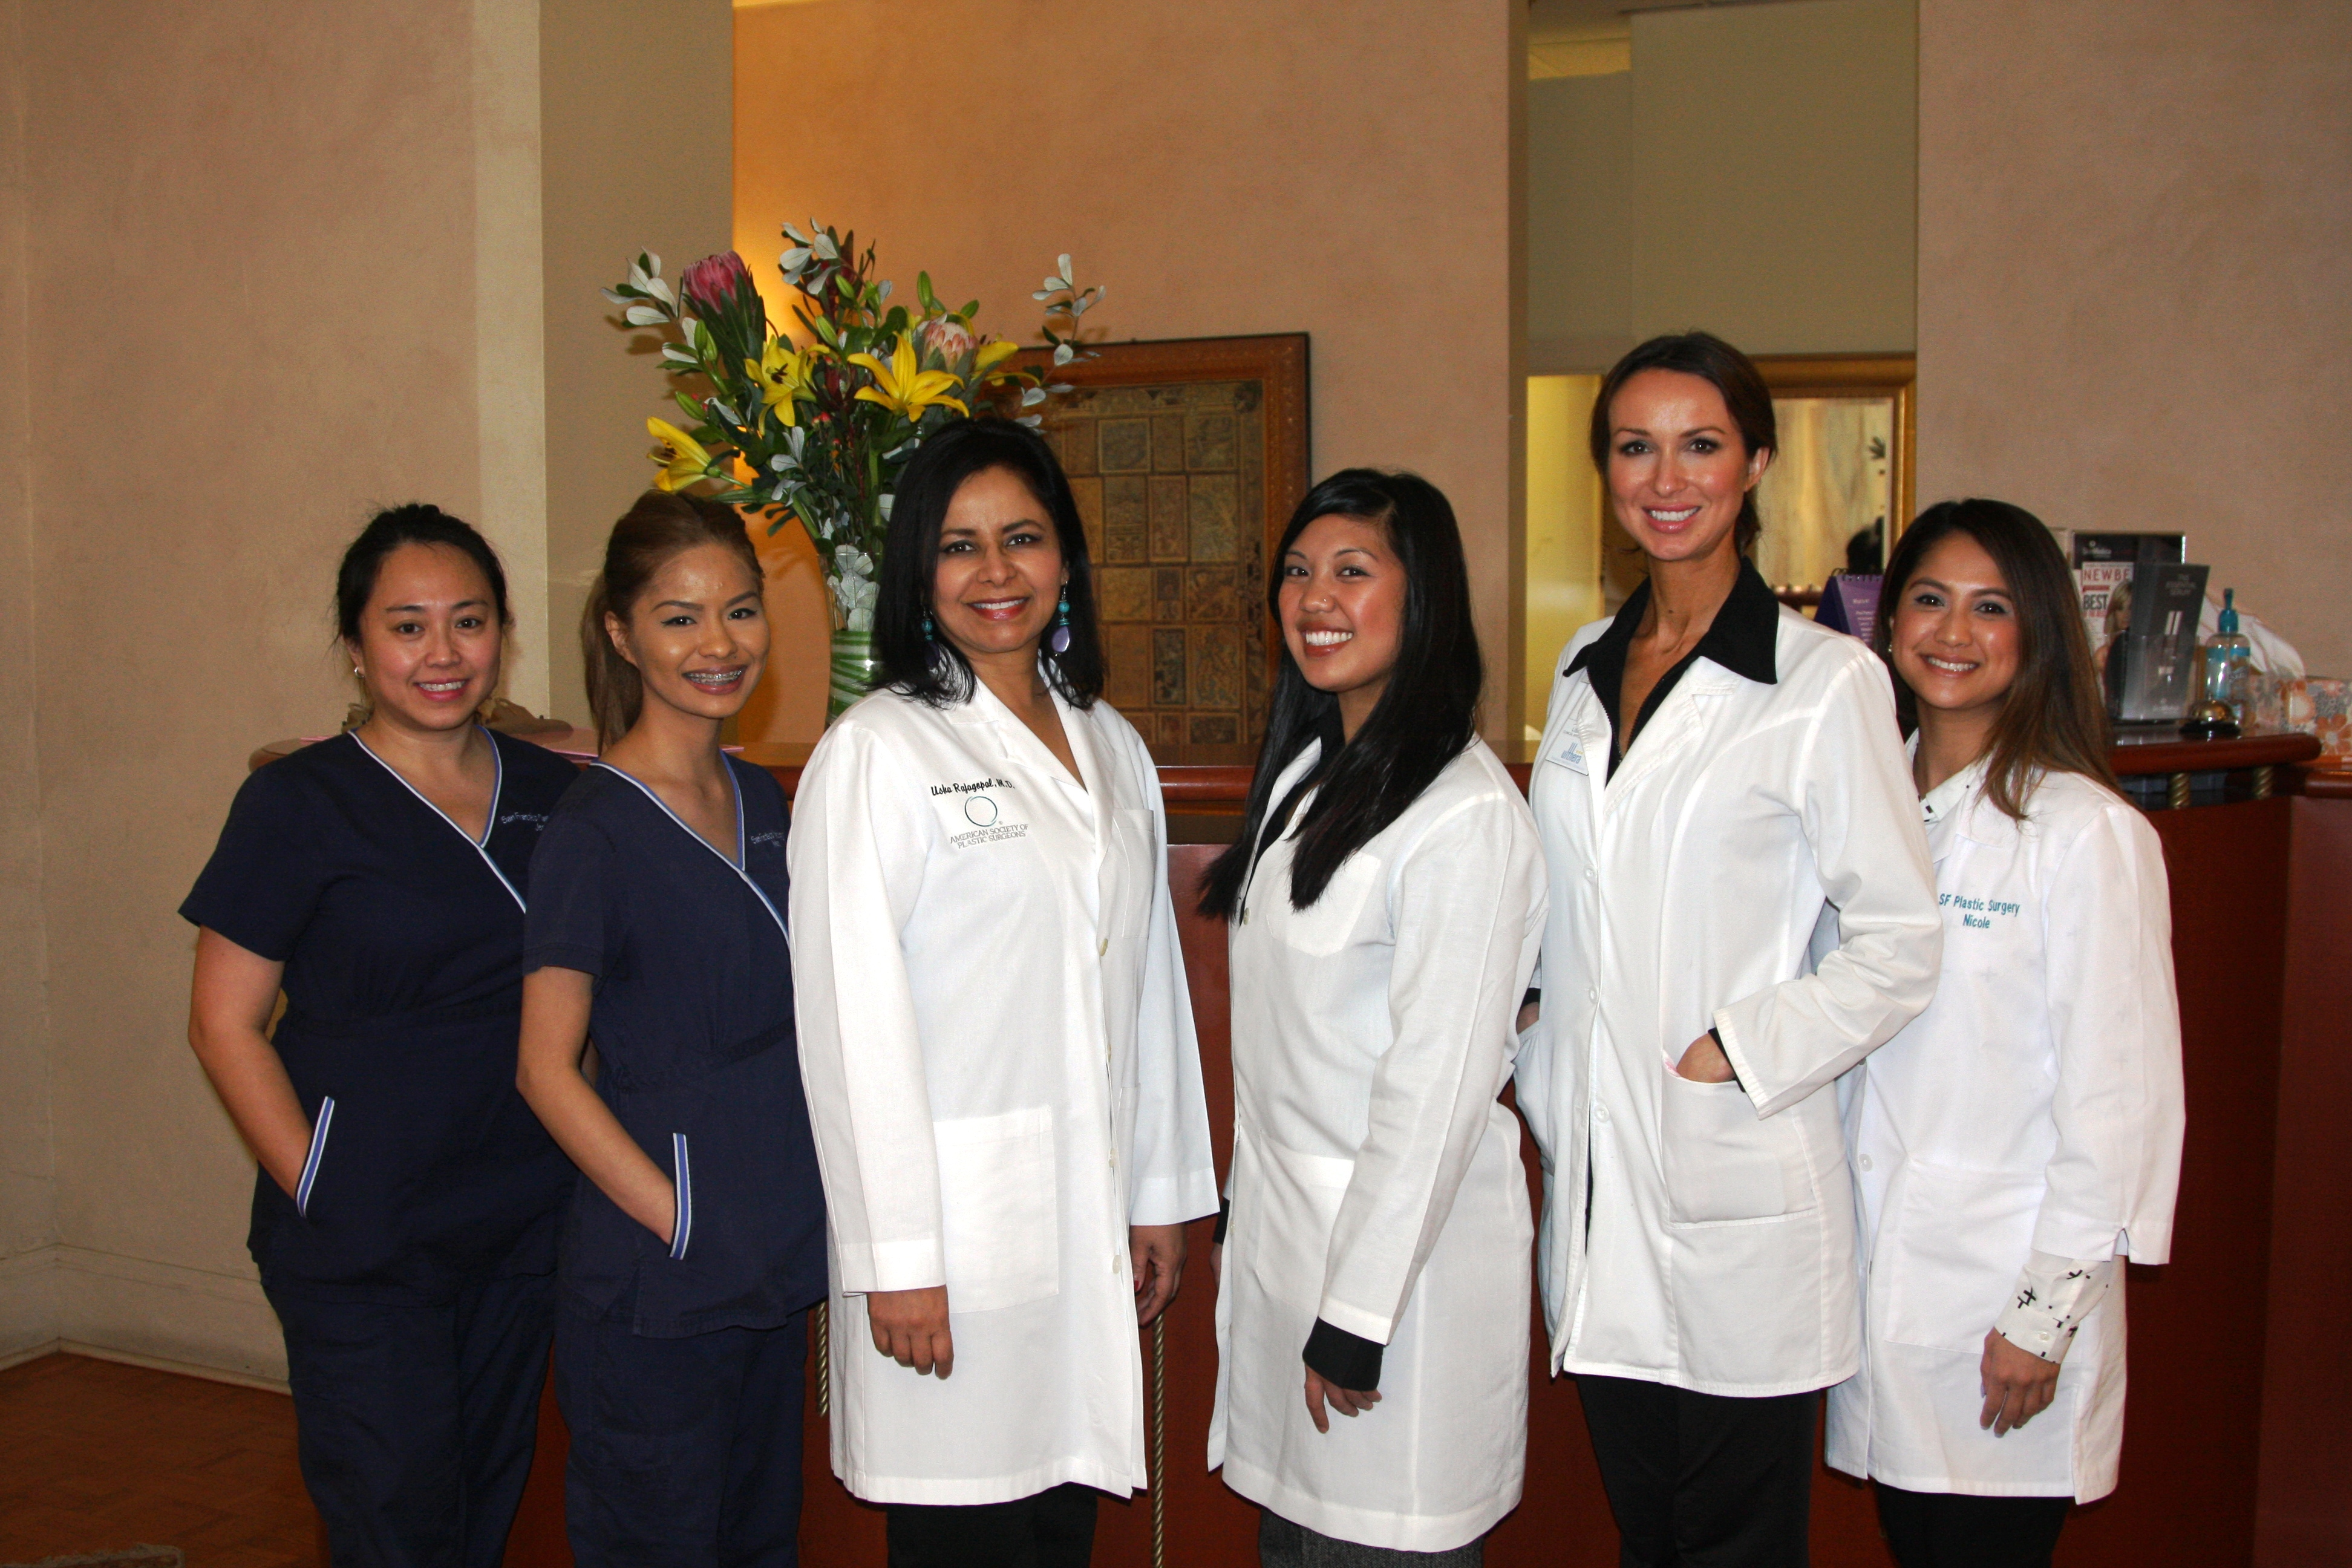 Dr. Rajagopal - San Francisco Plastic Surgery & Laser Center